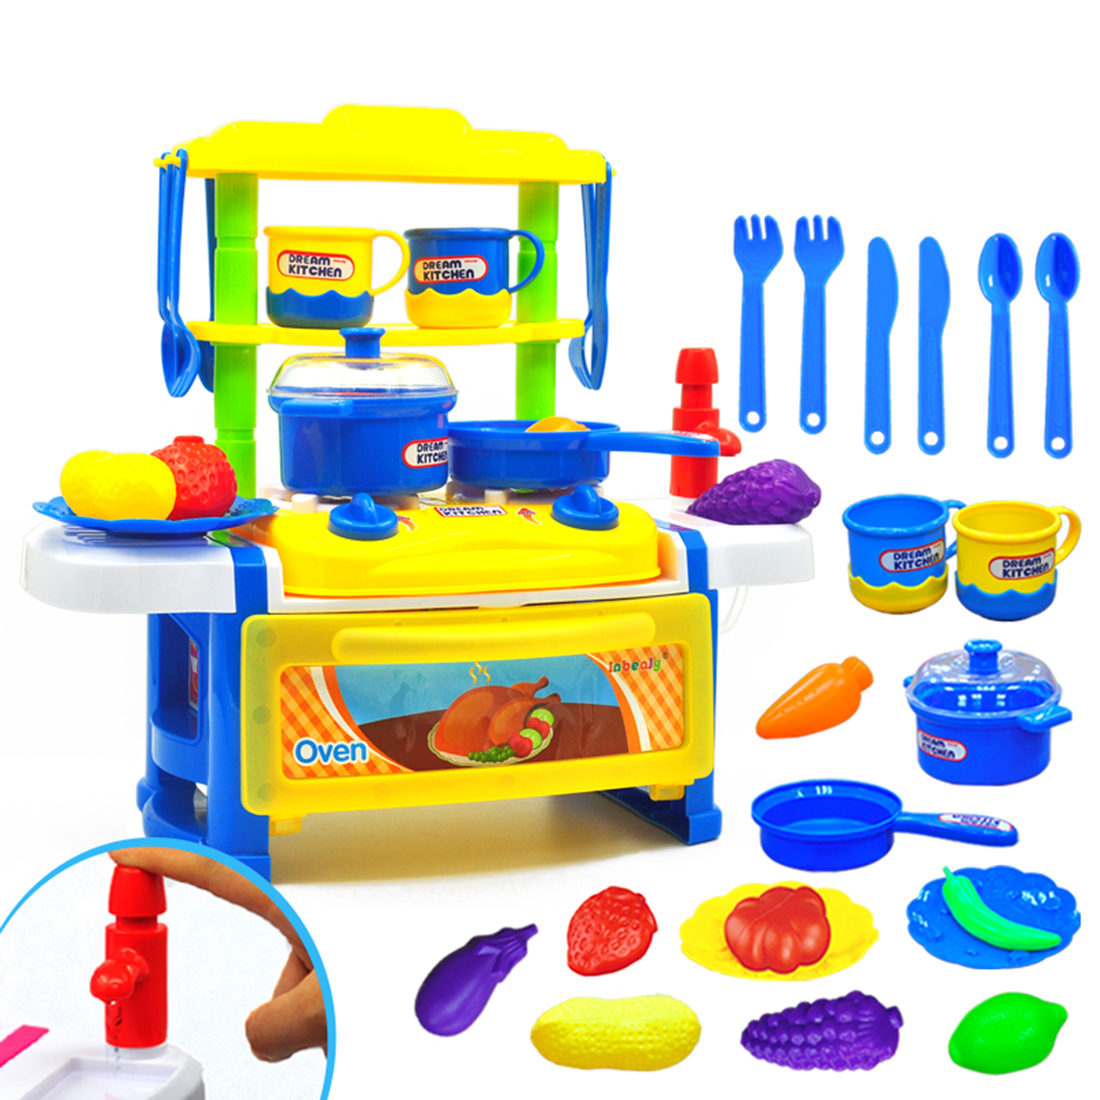 23Pcs/Set Children Cooking Play Flowing Water Kitchen Toys Pretend Play Home Educational Toy With Sound And Lights Effect